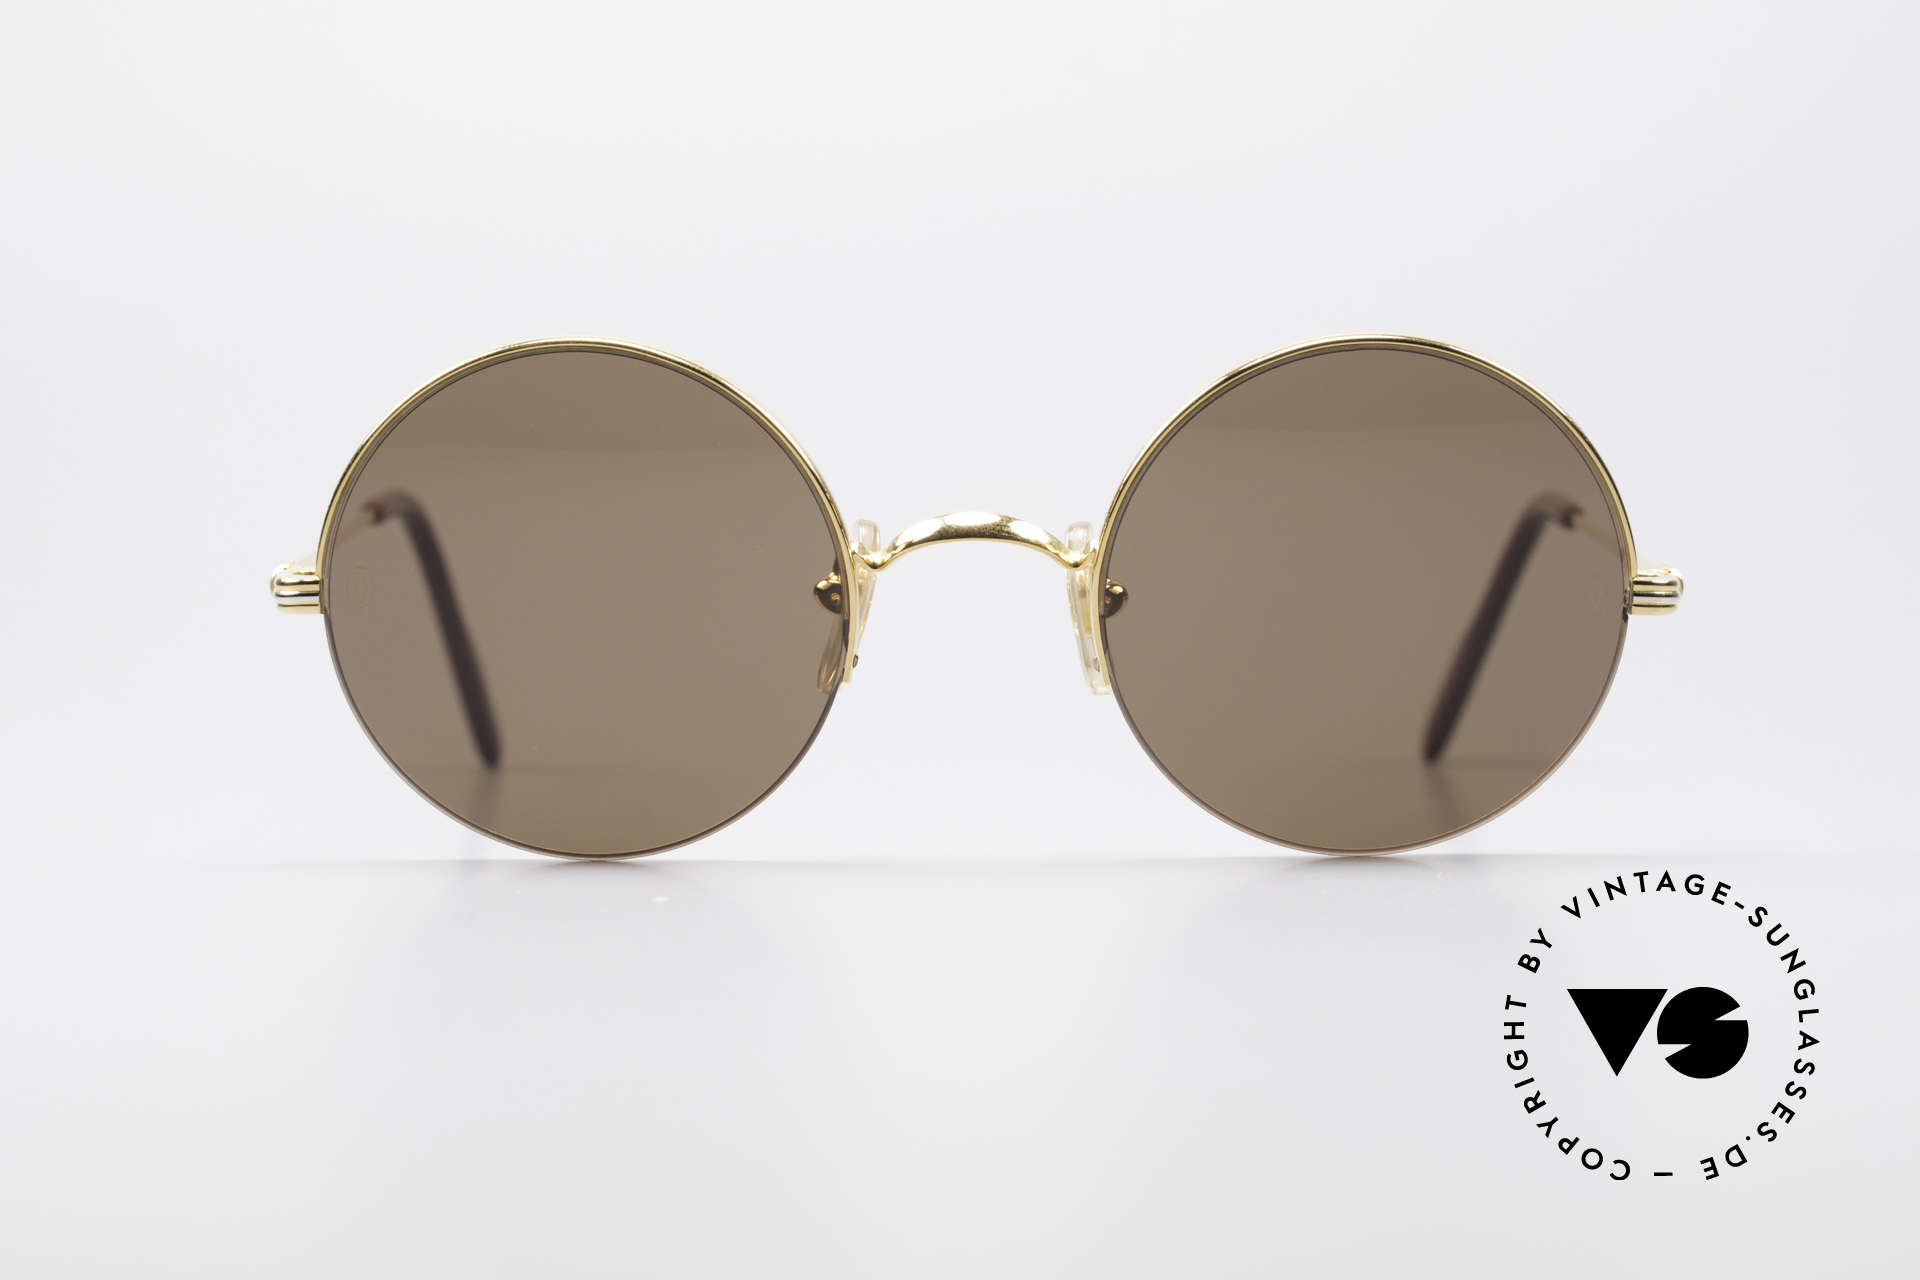 9fa580dc76 Sunglasses Cartier Mayfair Luxury Round Sunglasses